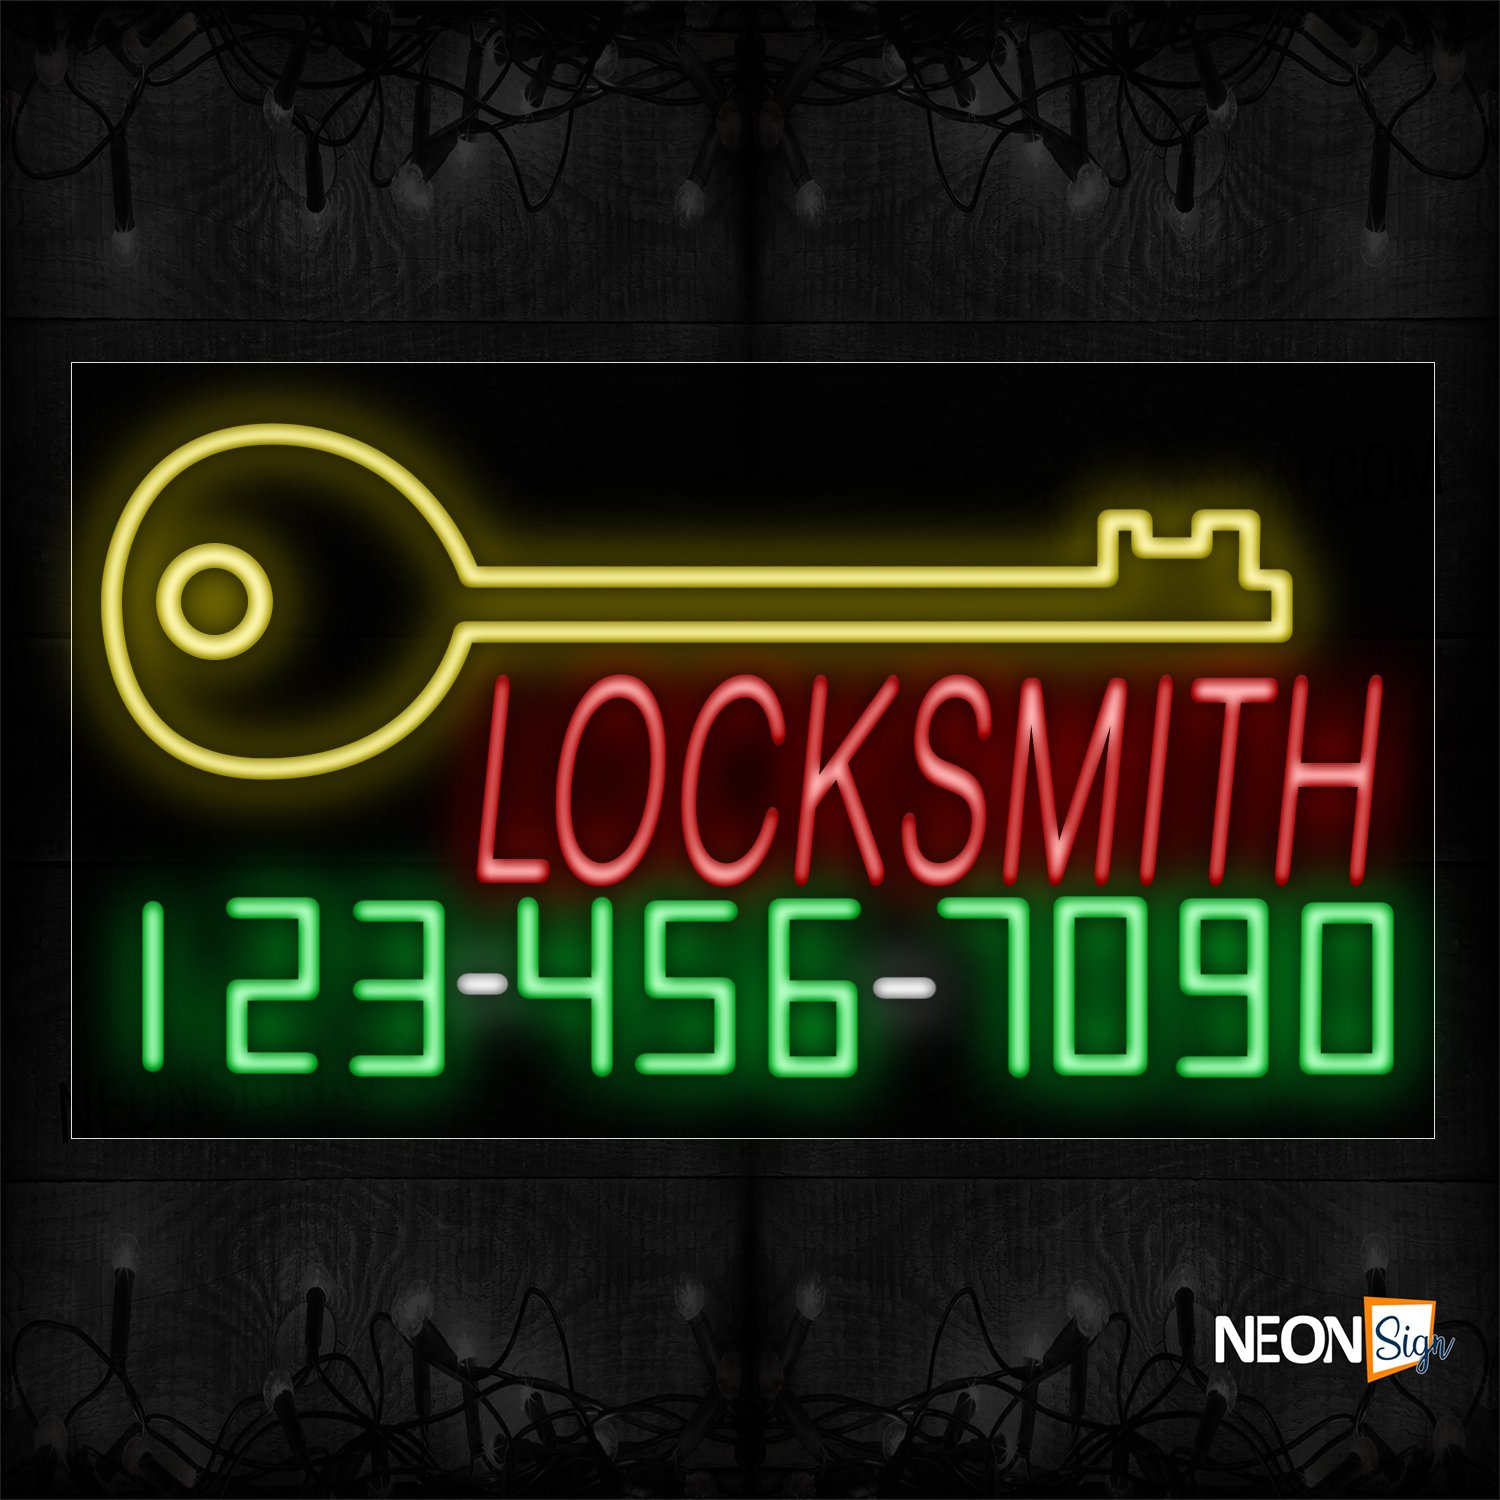 Image of 15078 Locksmith With Key Sign Logo & Contact No Neon Sign_20x37 Black Backing